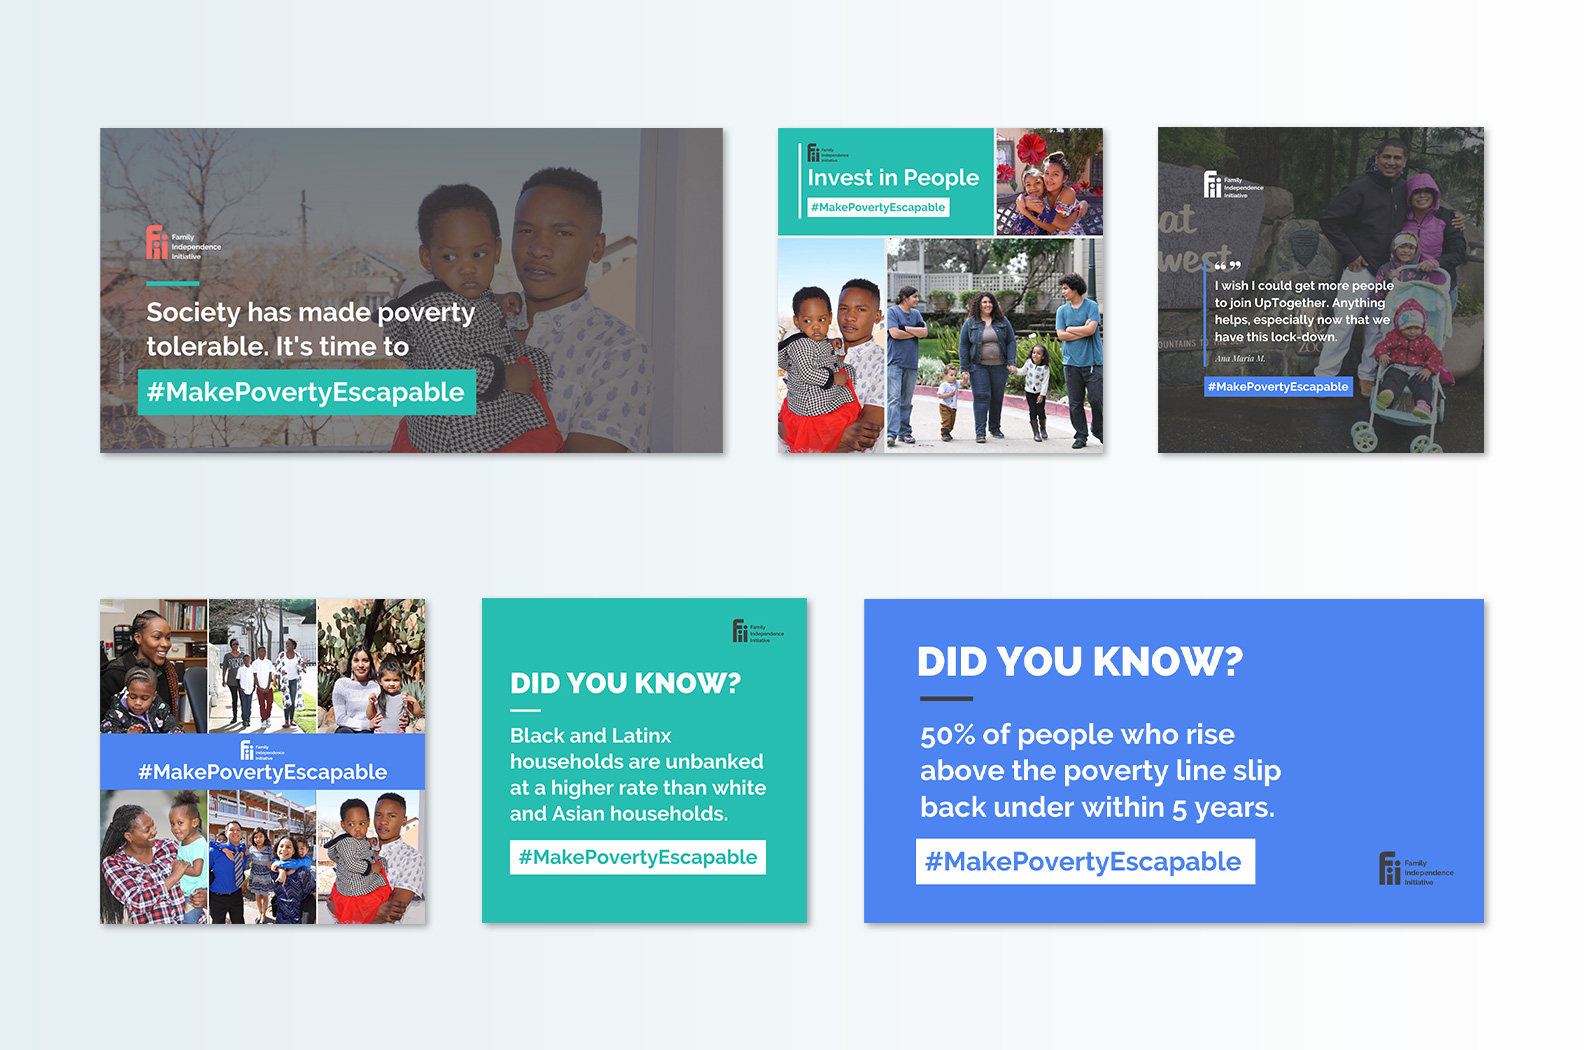 Examples of the graphics created for the Make Poverty Escapable social media campaign